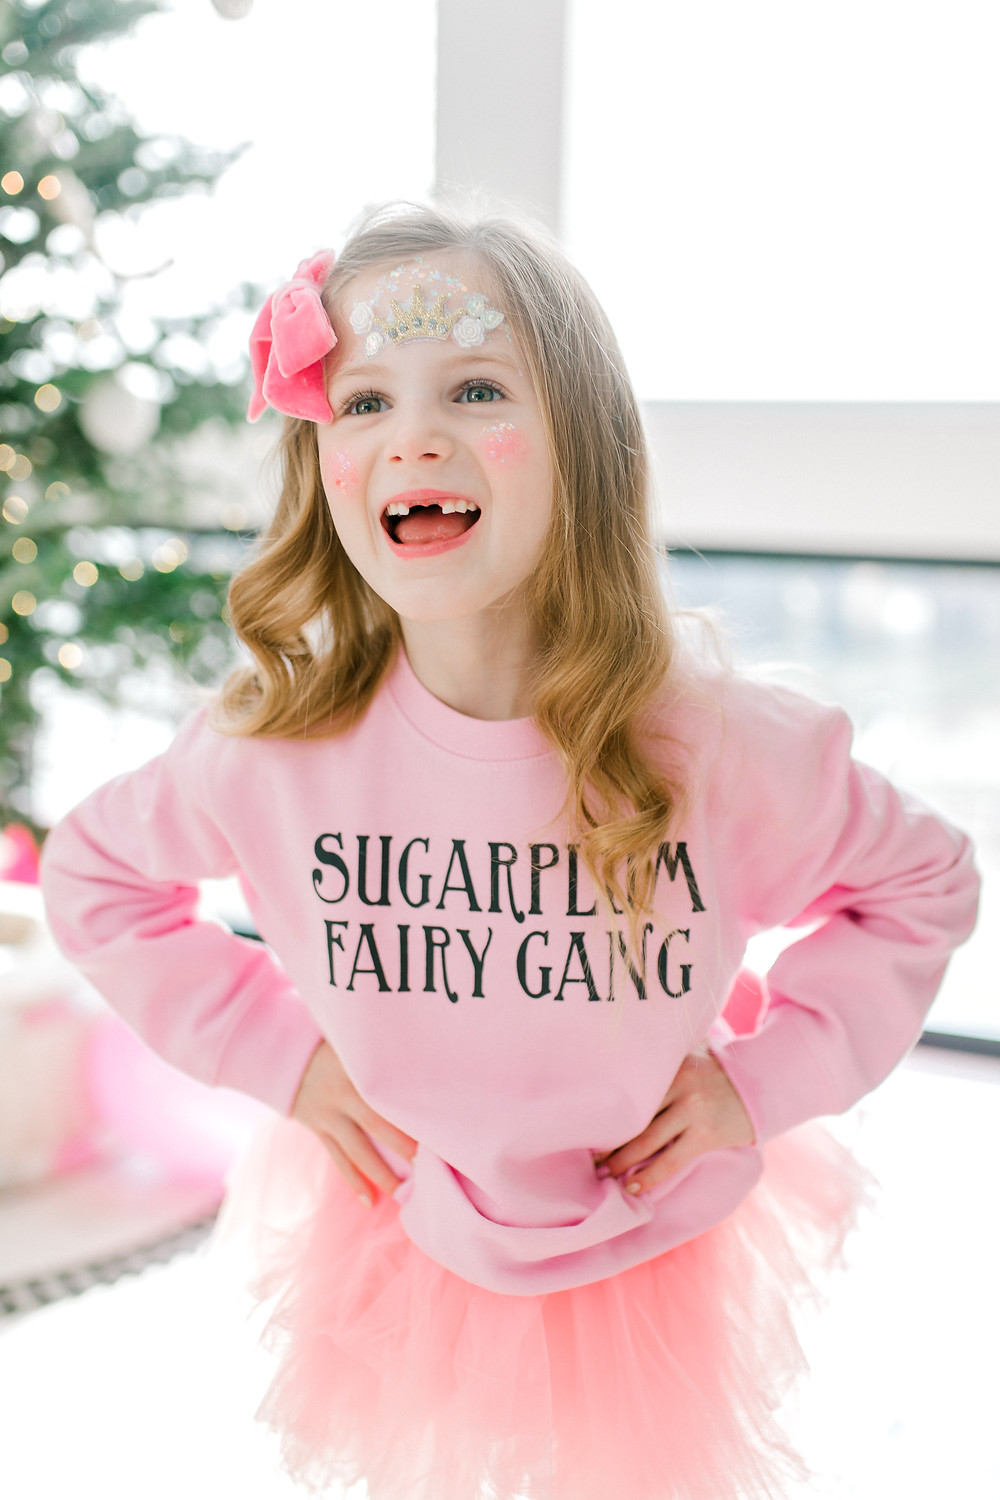 A birthday girl is dressed in a pink hair bow with a pink tutu and a pink sugar plum fairy sweater.